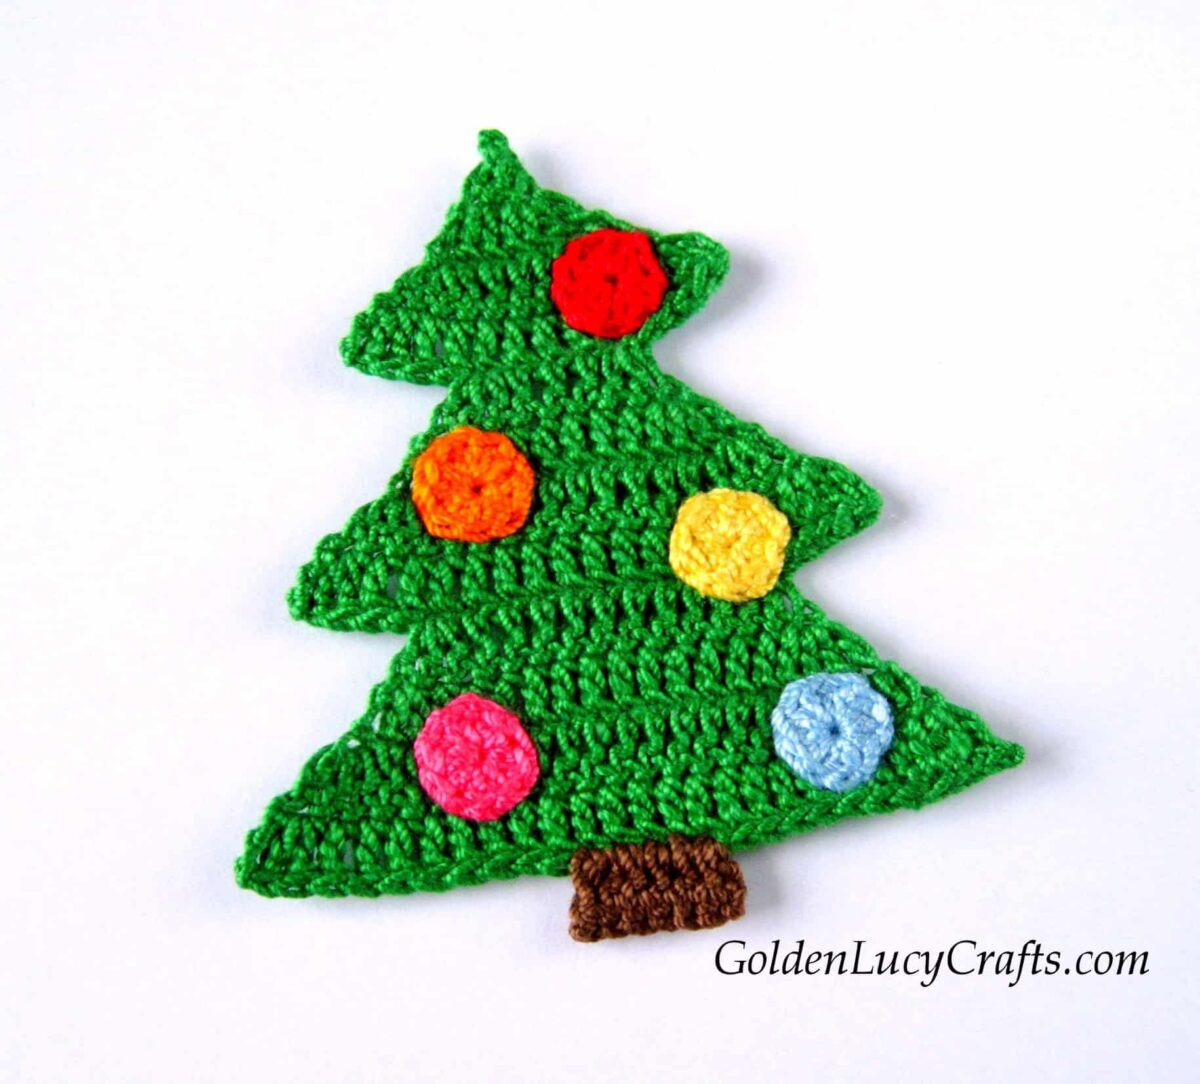 Crocheted green Christmas tree applique with round colorful ornaments.